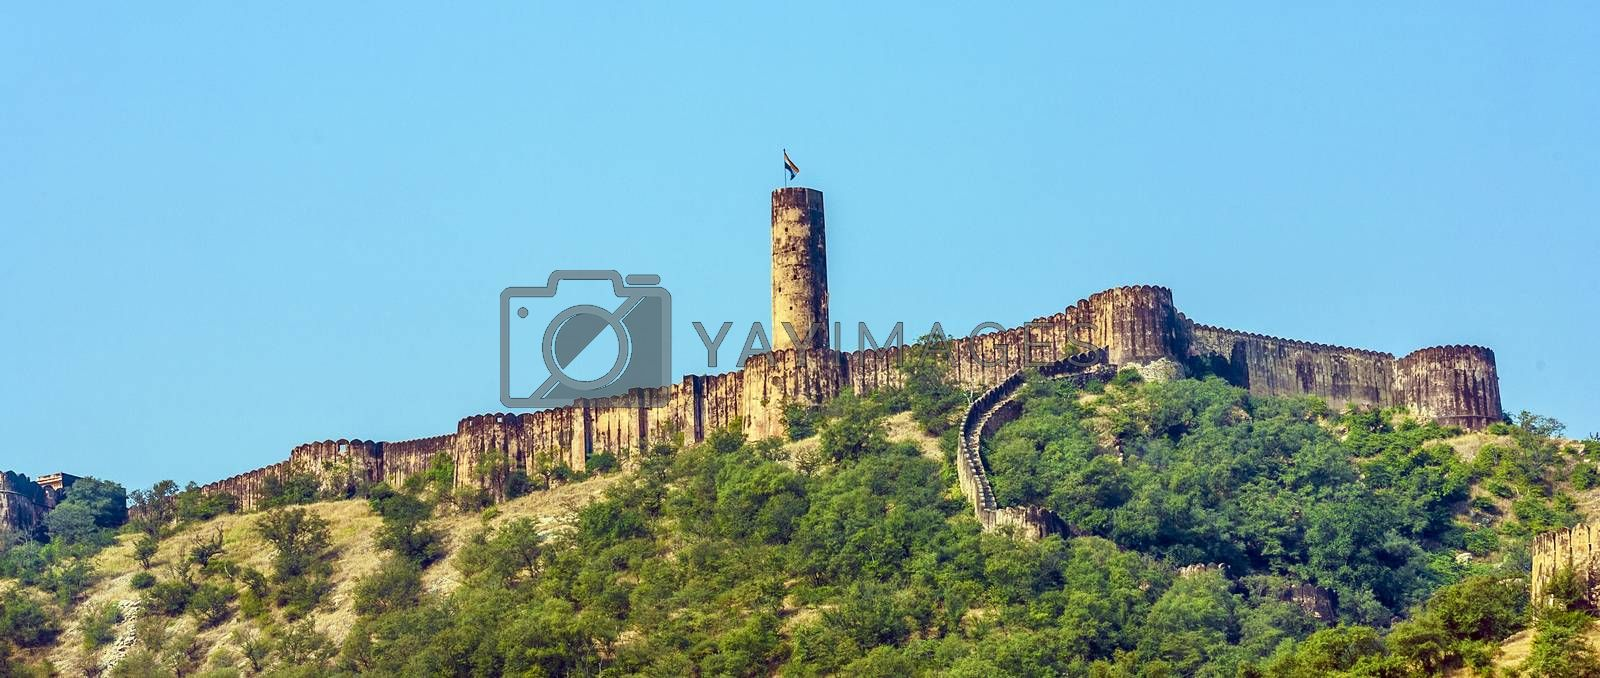 Royalty free image of Famous Rajasthan landmark - Amber fort, Rajasthan, India  by meinzahn